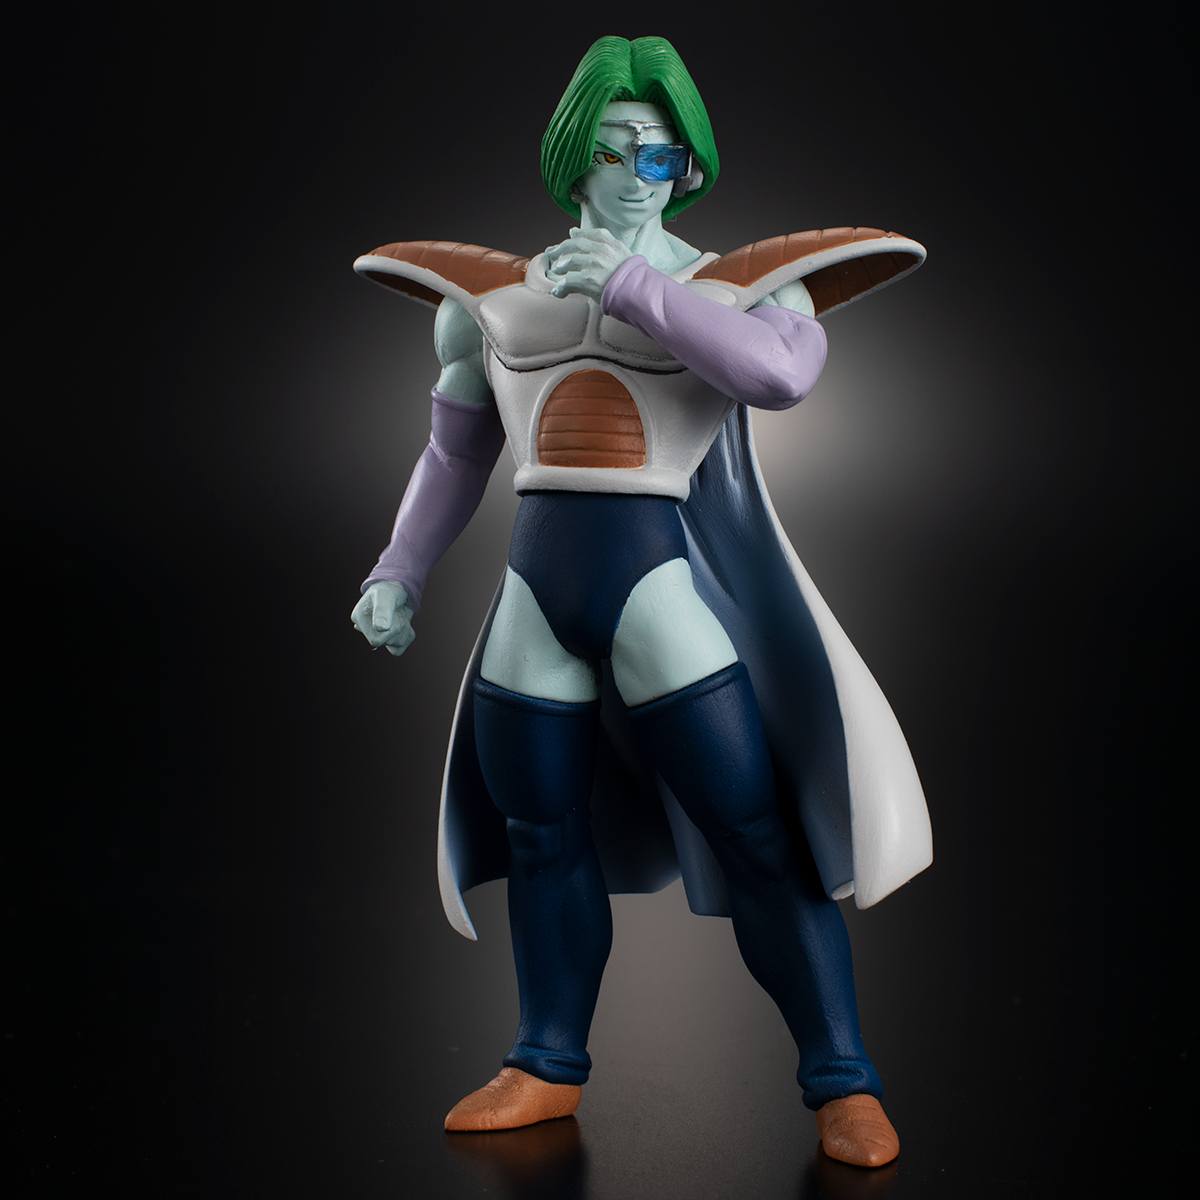 <FREE DELIVERY> HG DRAGONBALL INVASION OF FRIEZA